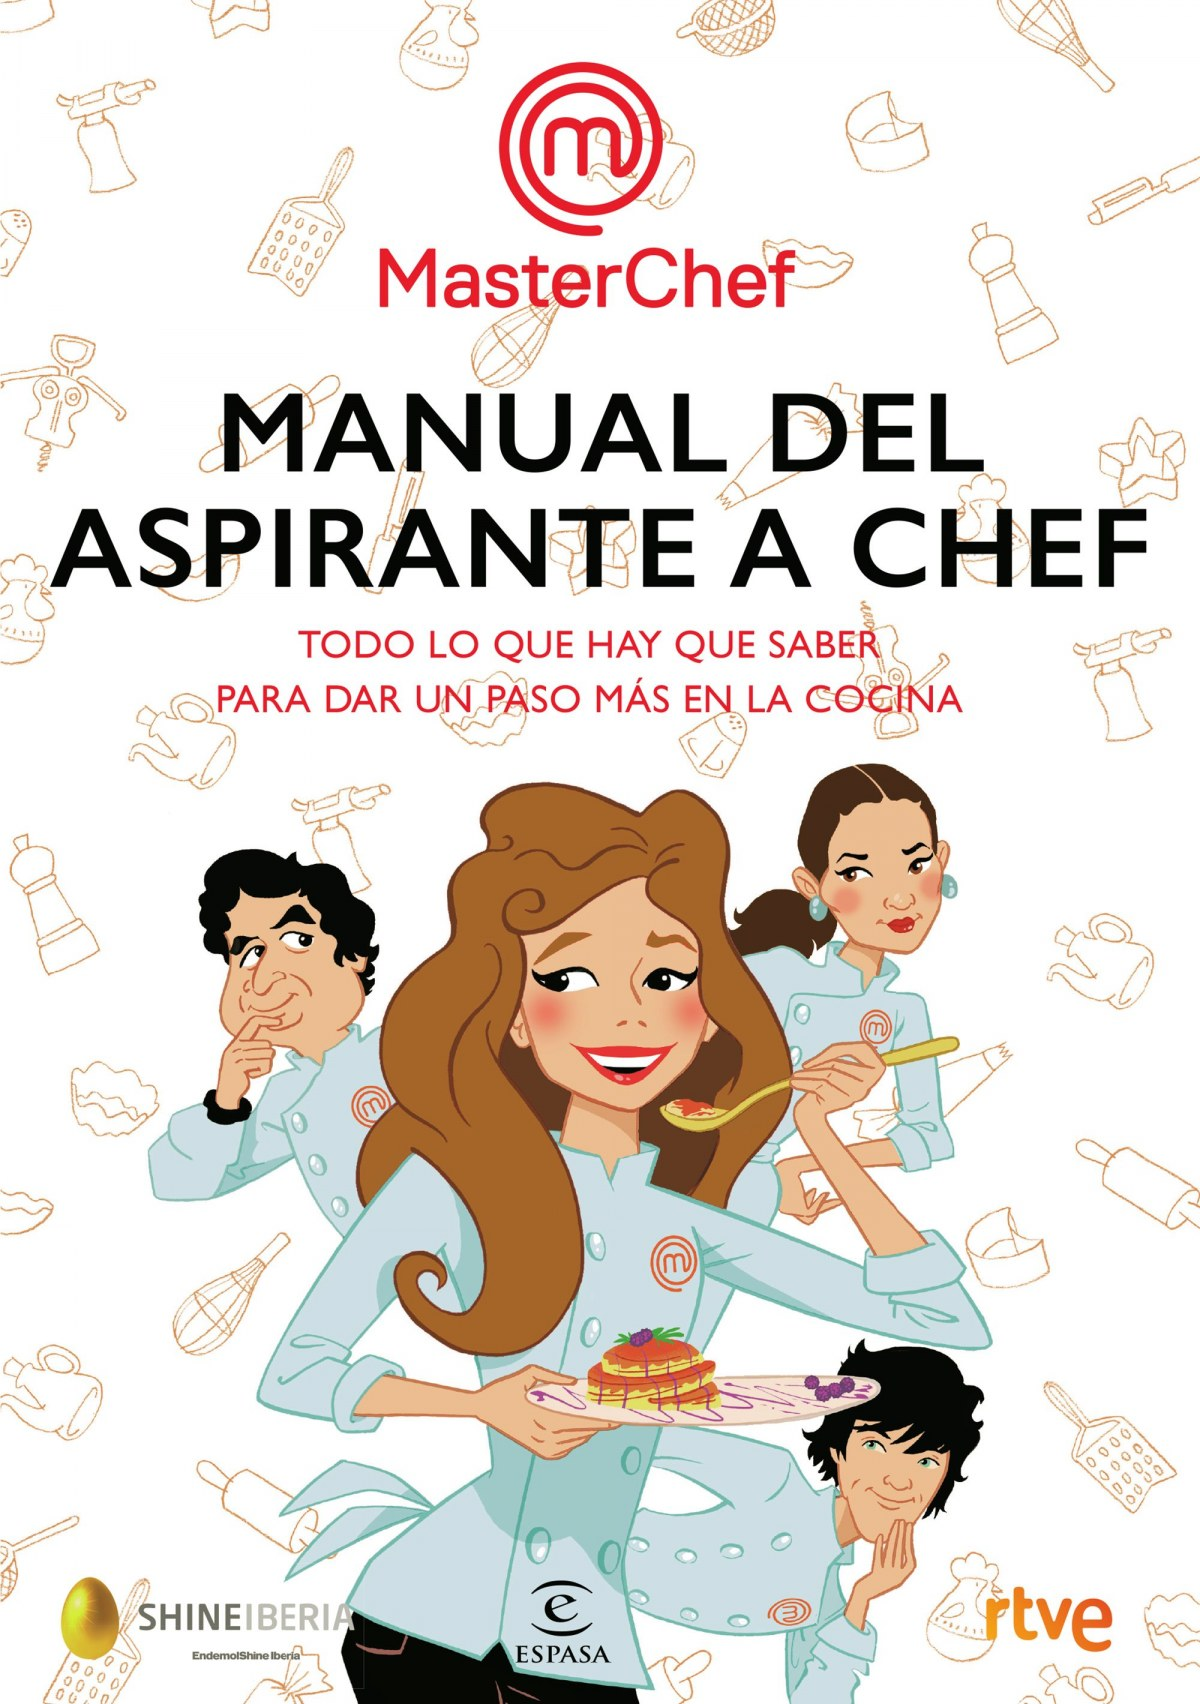 MANUAL DEL ASPIRANTE A CHEF MASTERCHEF